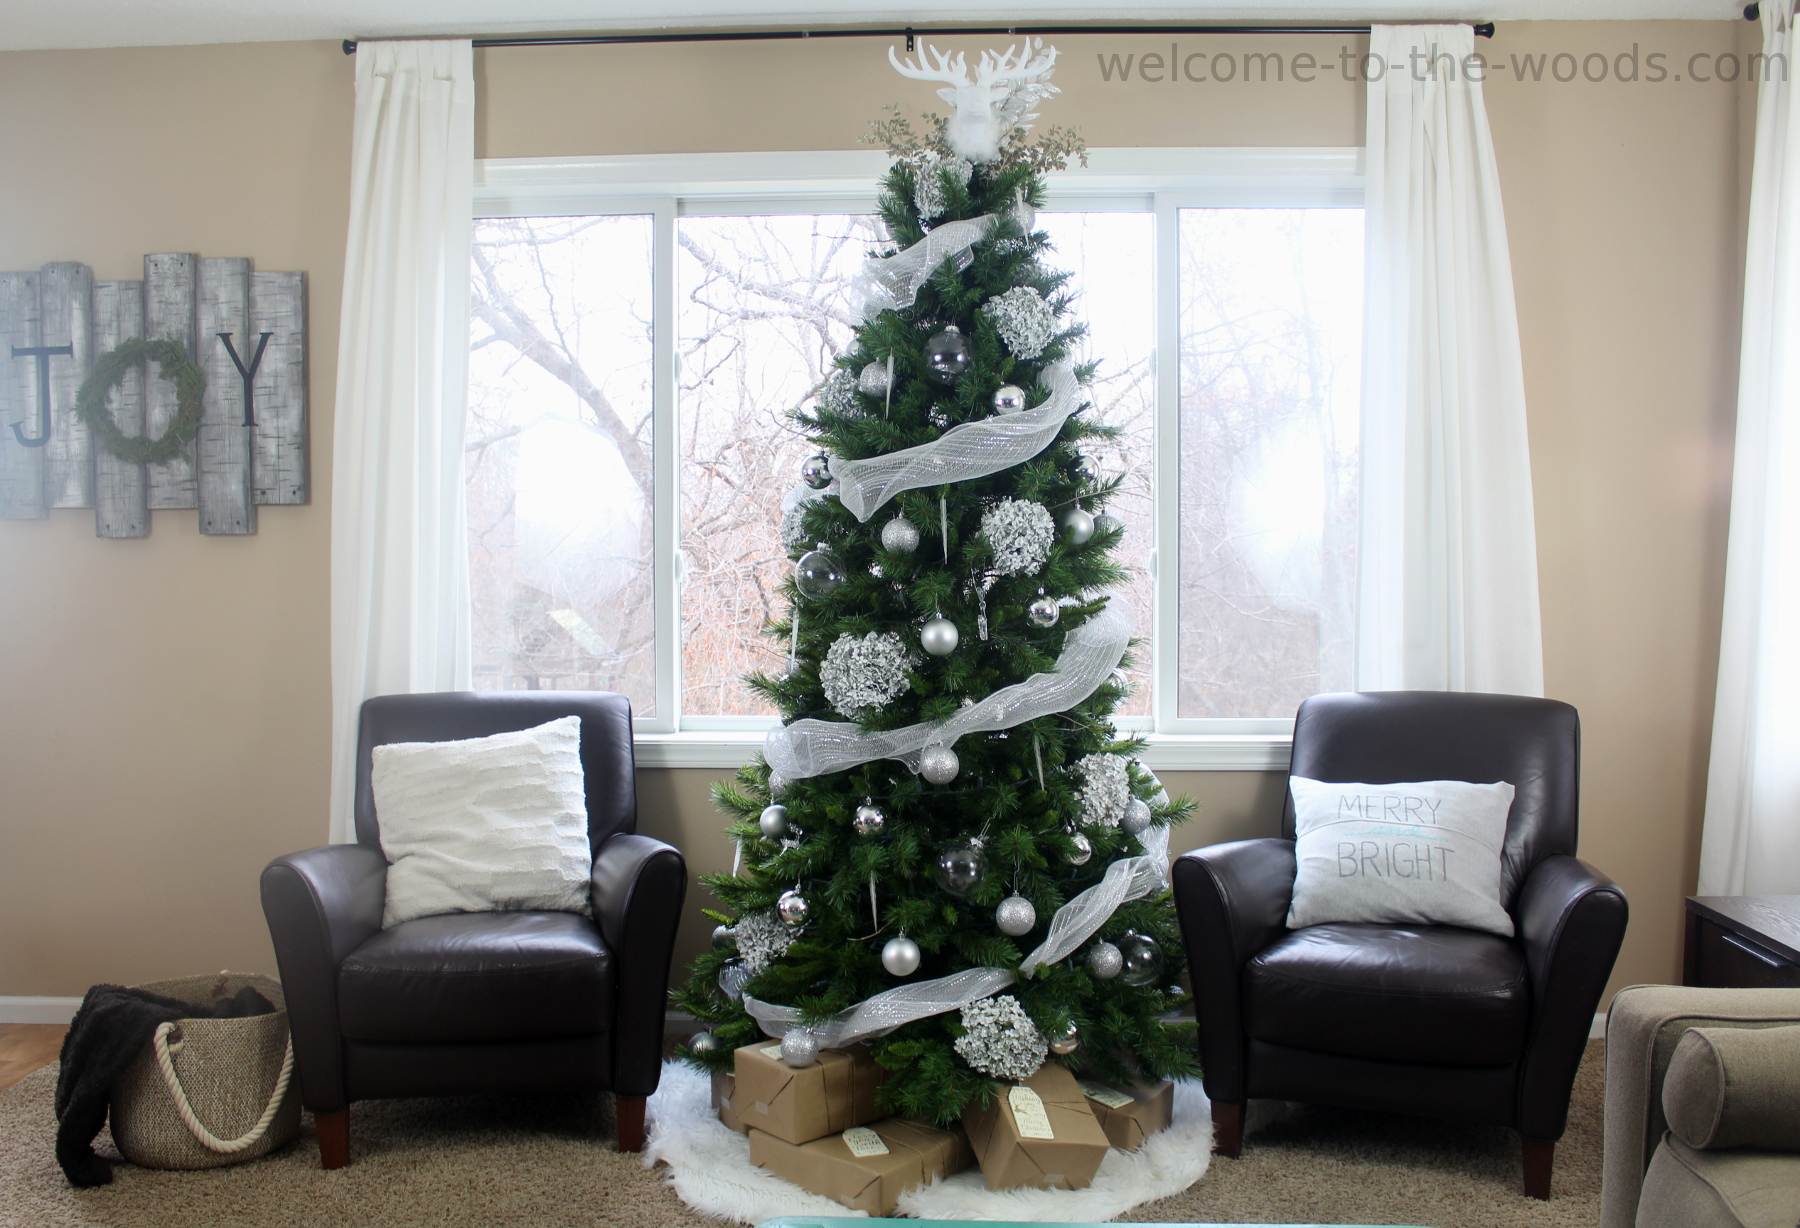 White Winter Woodland Christmas Tree - Welcome to the Woods